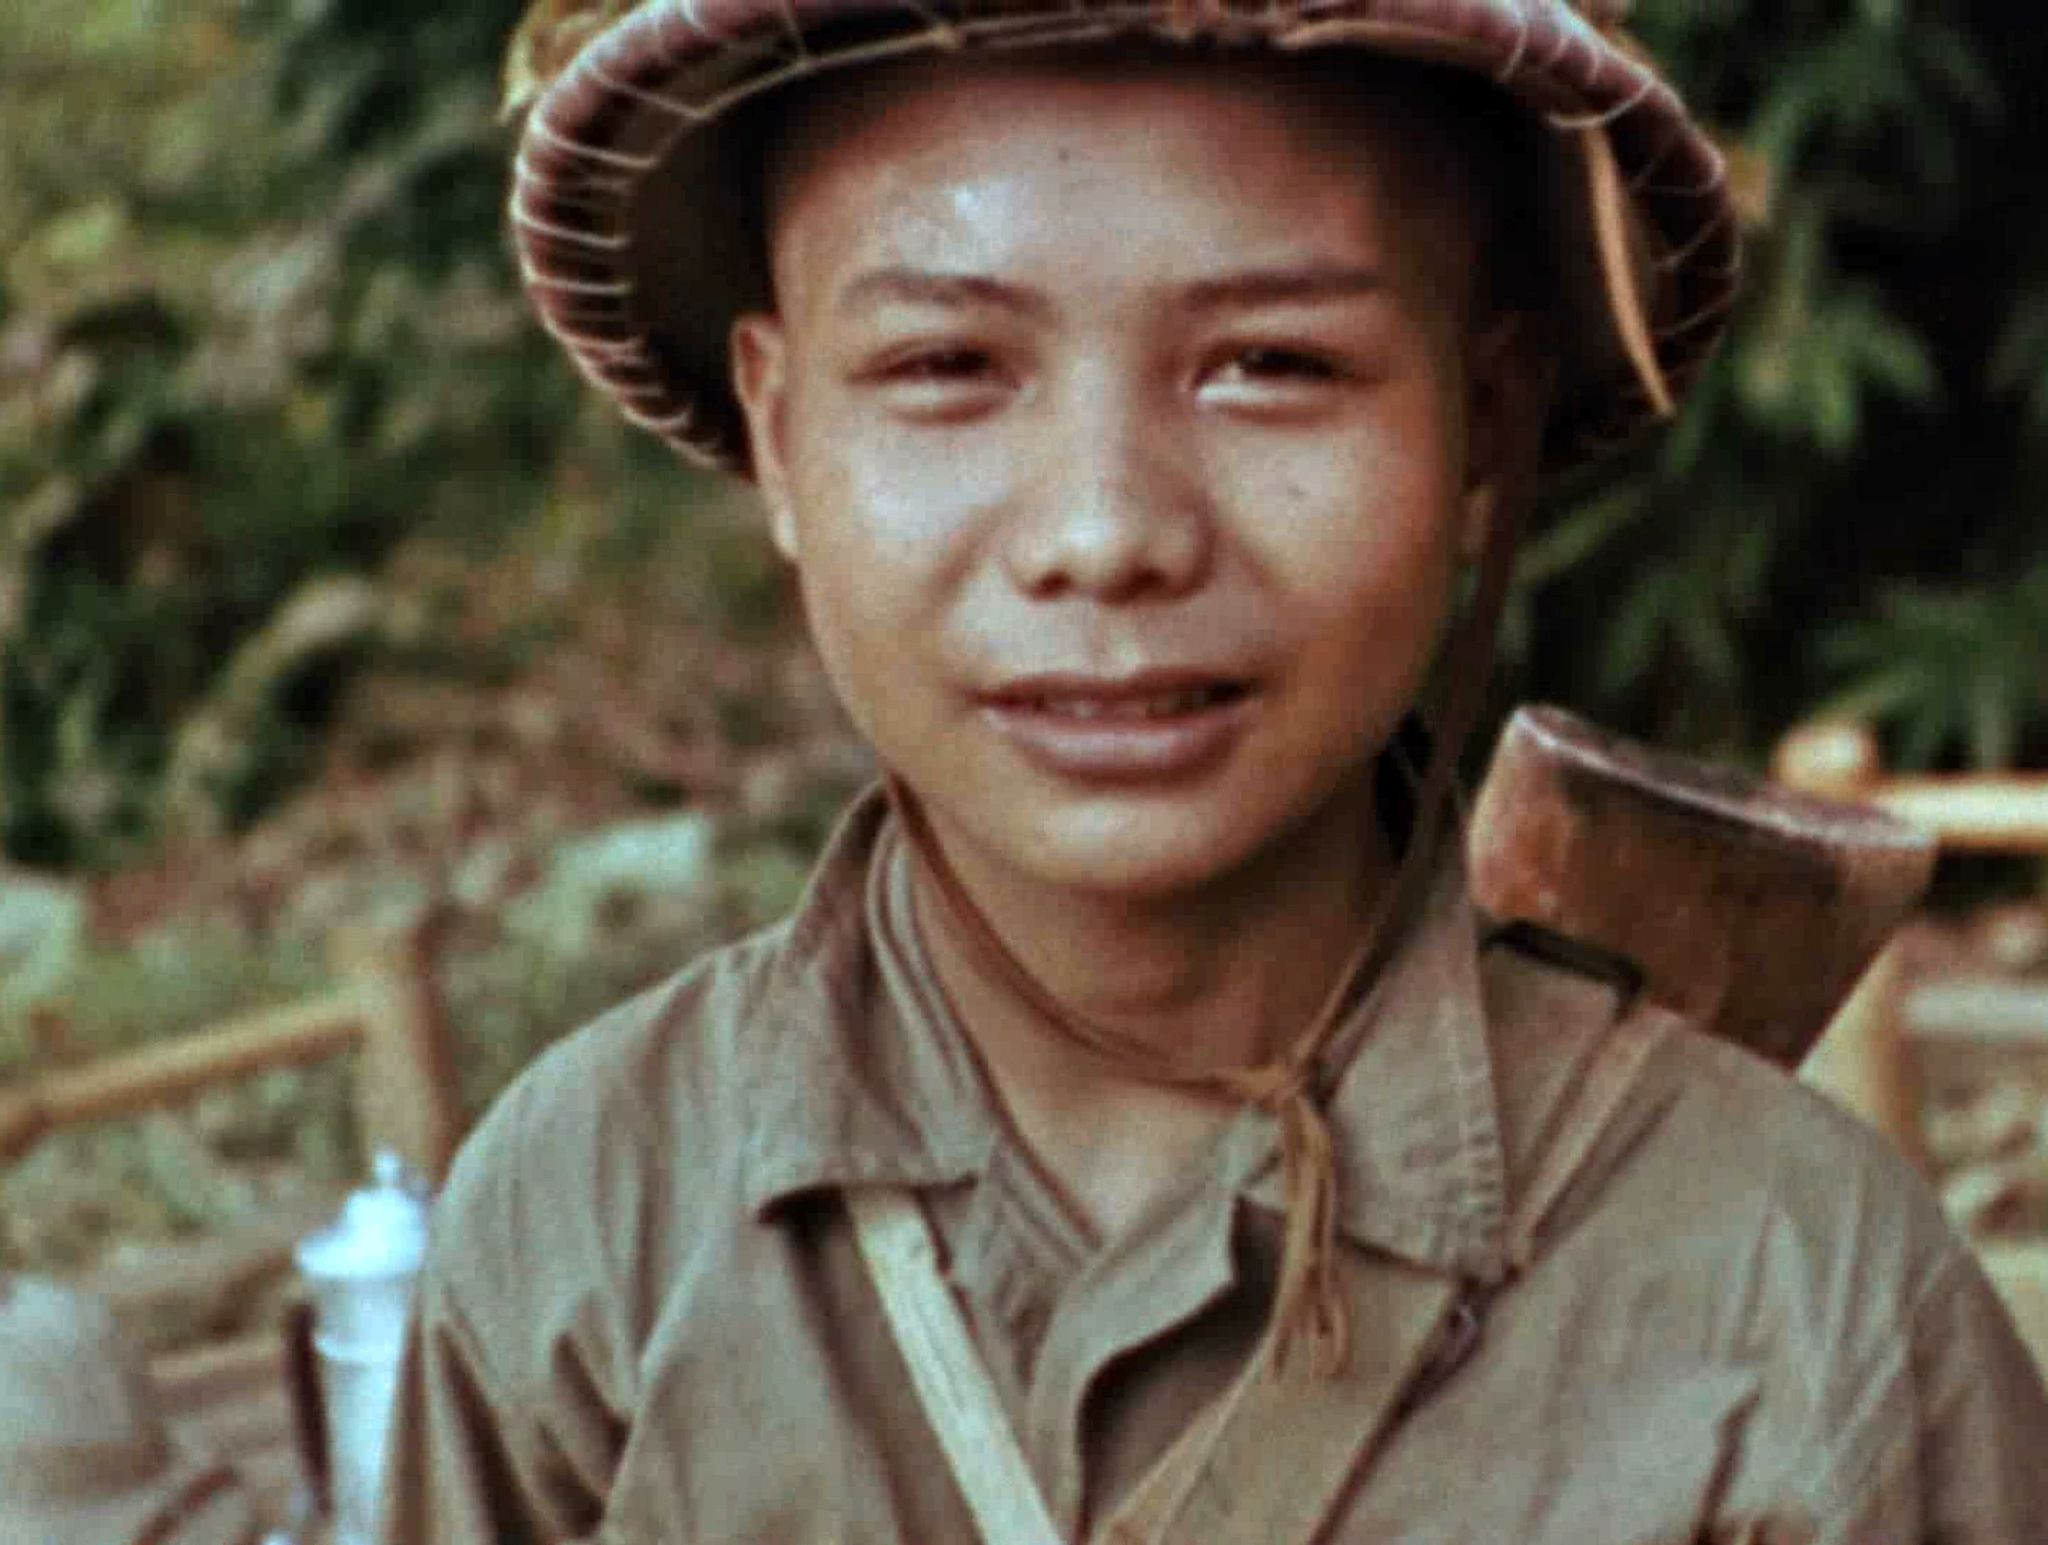 Vietnam:  A Vietminh soldier in Dien Bien Phu.  This image is from Apocalypse: War of Worlds. [Photo of the day - February 2020]